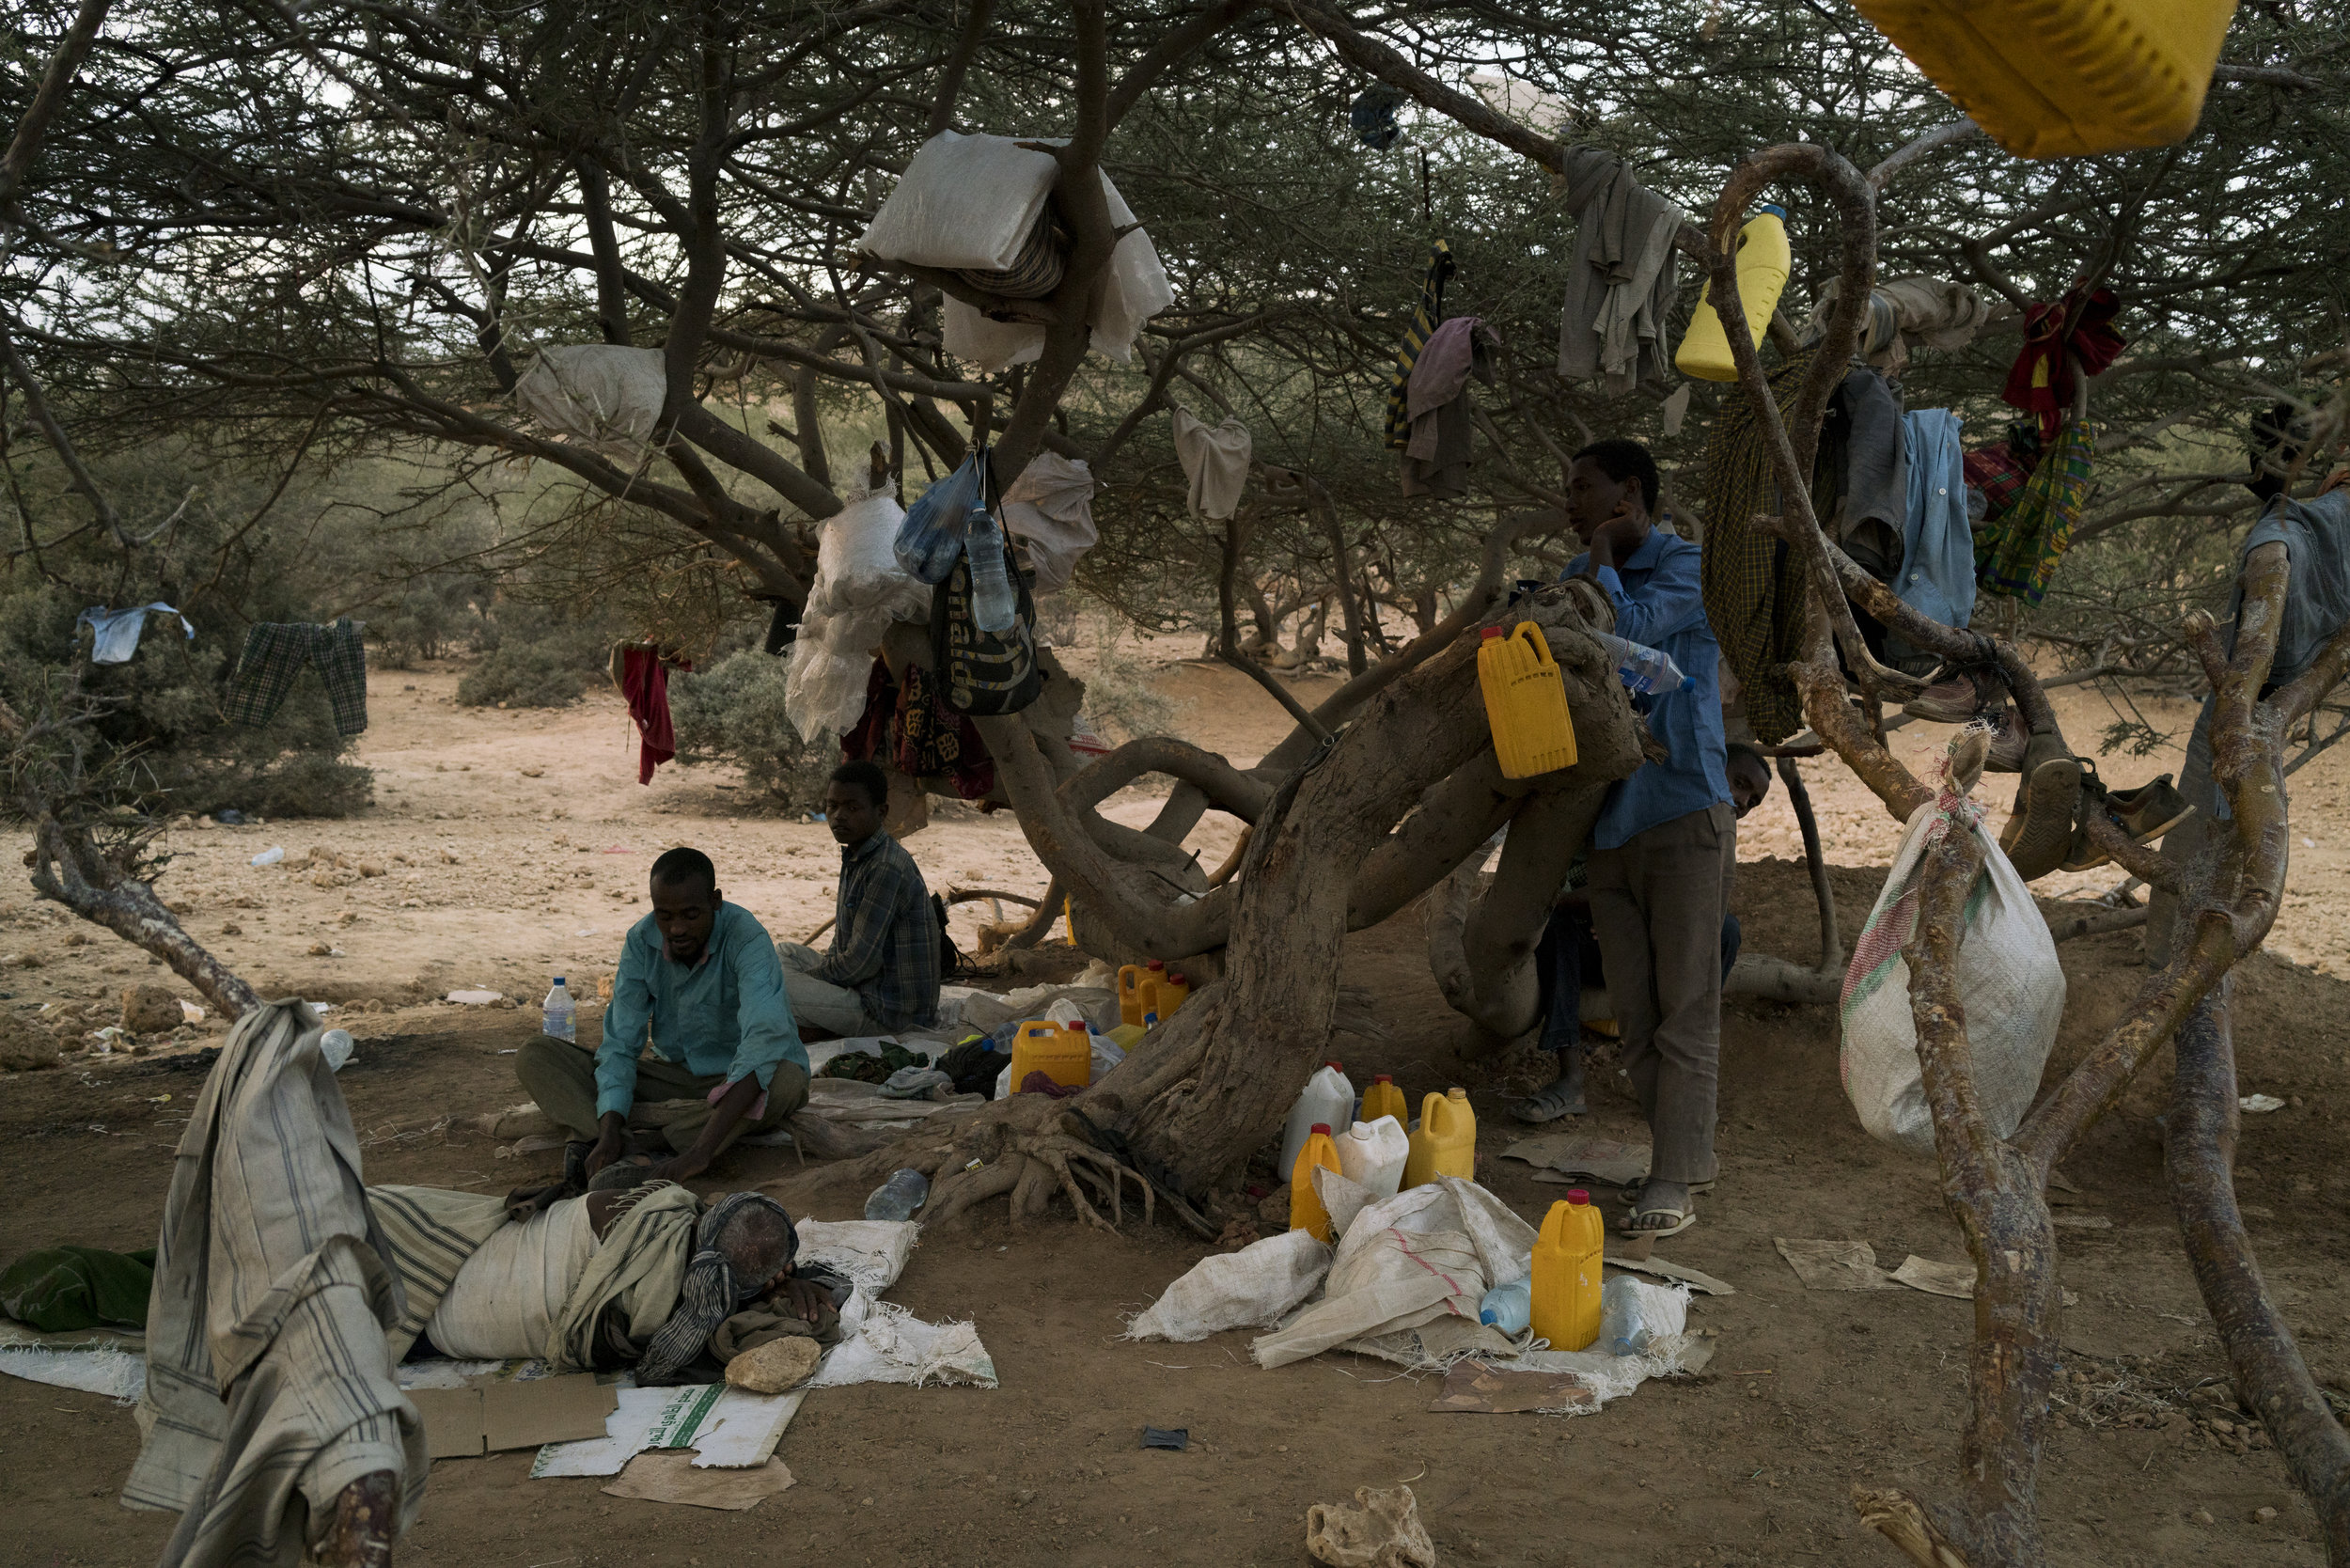 Waiting to be smuggled by boat to Yemen and eventually find their way to Saudi Arabia in search of work, Ethiopian migrants live under a tree outside the town of Obock, Djibouti, January 12, 2016.